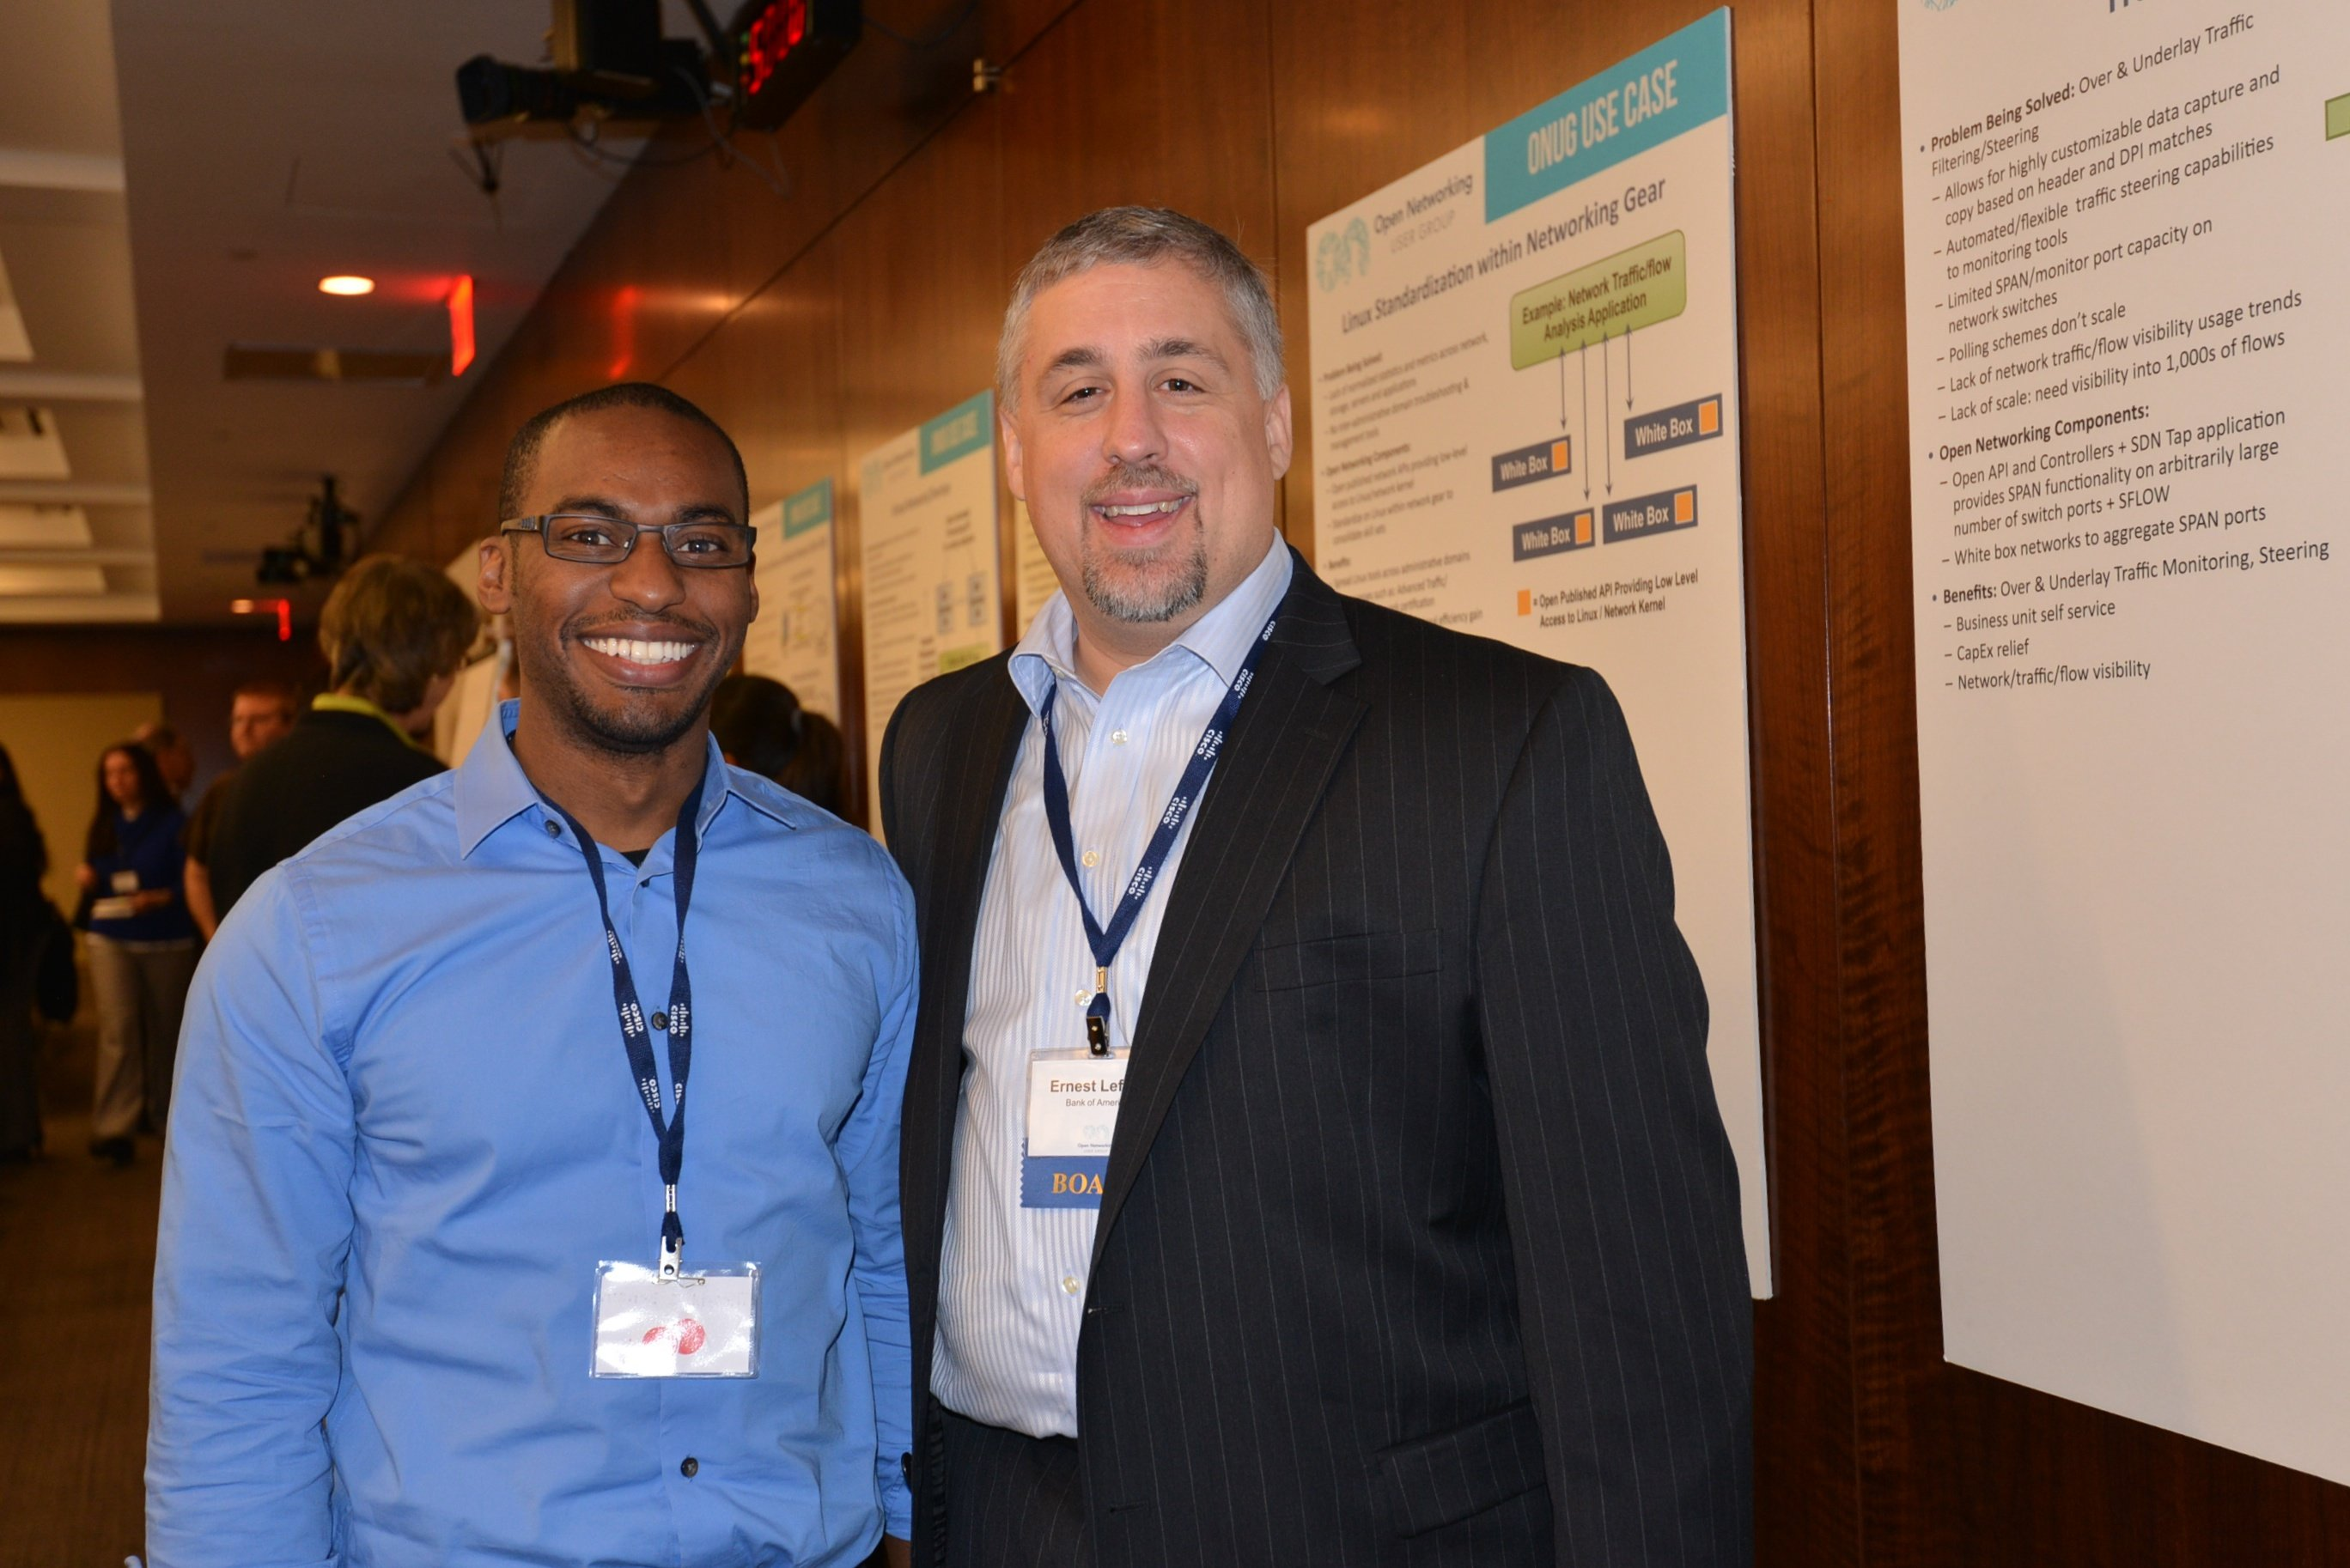 ONUG co-founder and co-chairman, Ernest Lefner poses with ONUG attendee